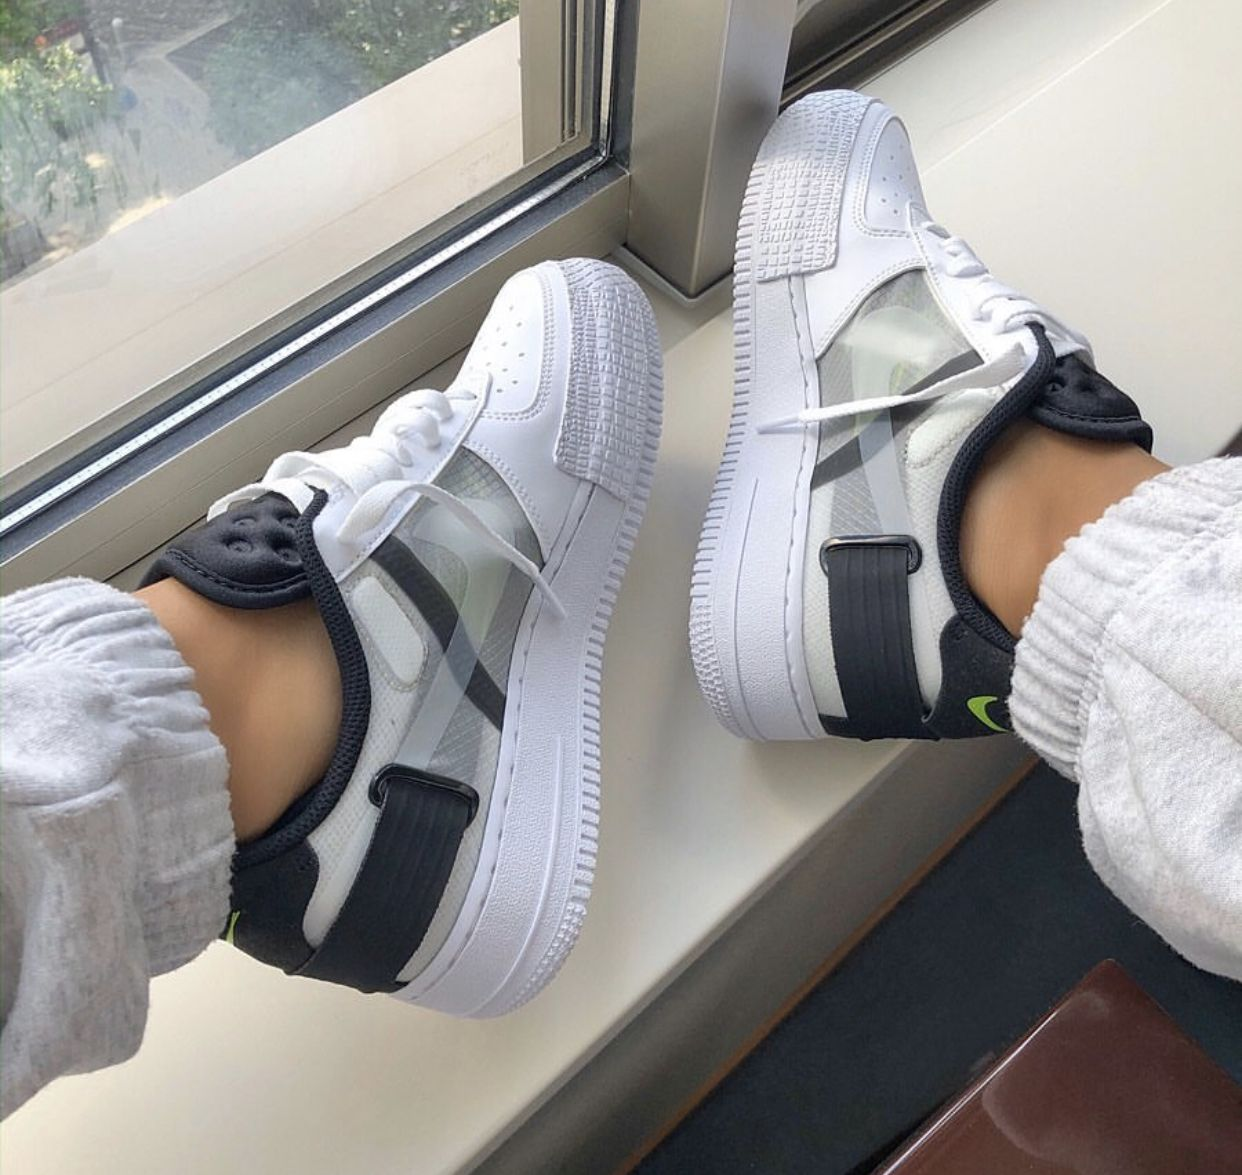 Nike shoes air force, Hype shoes, Sneakers